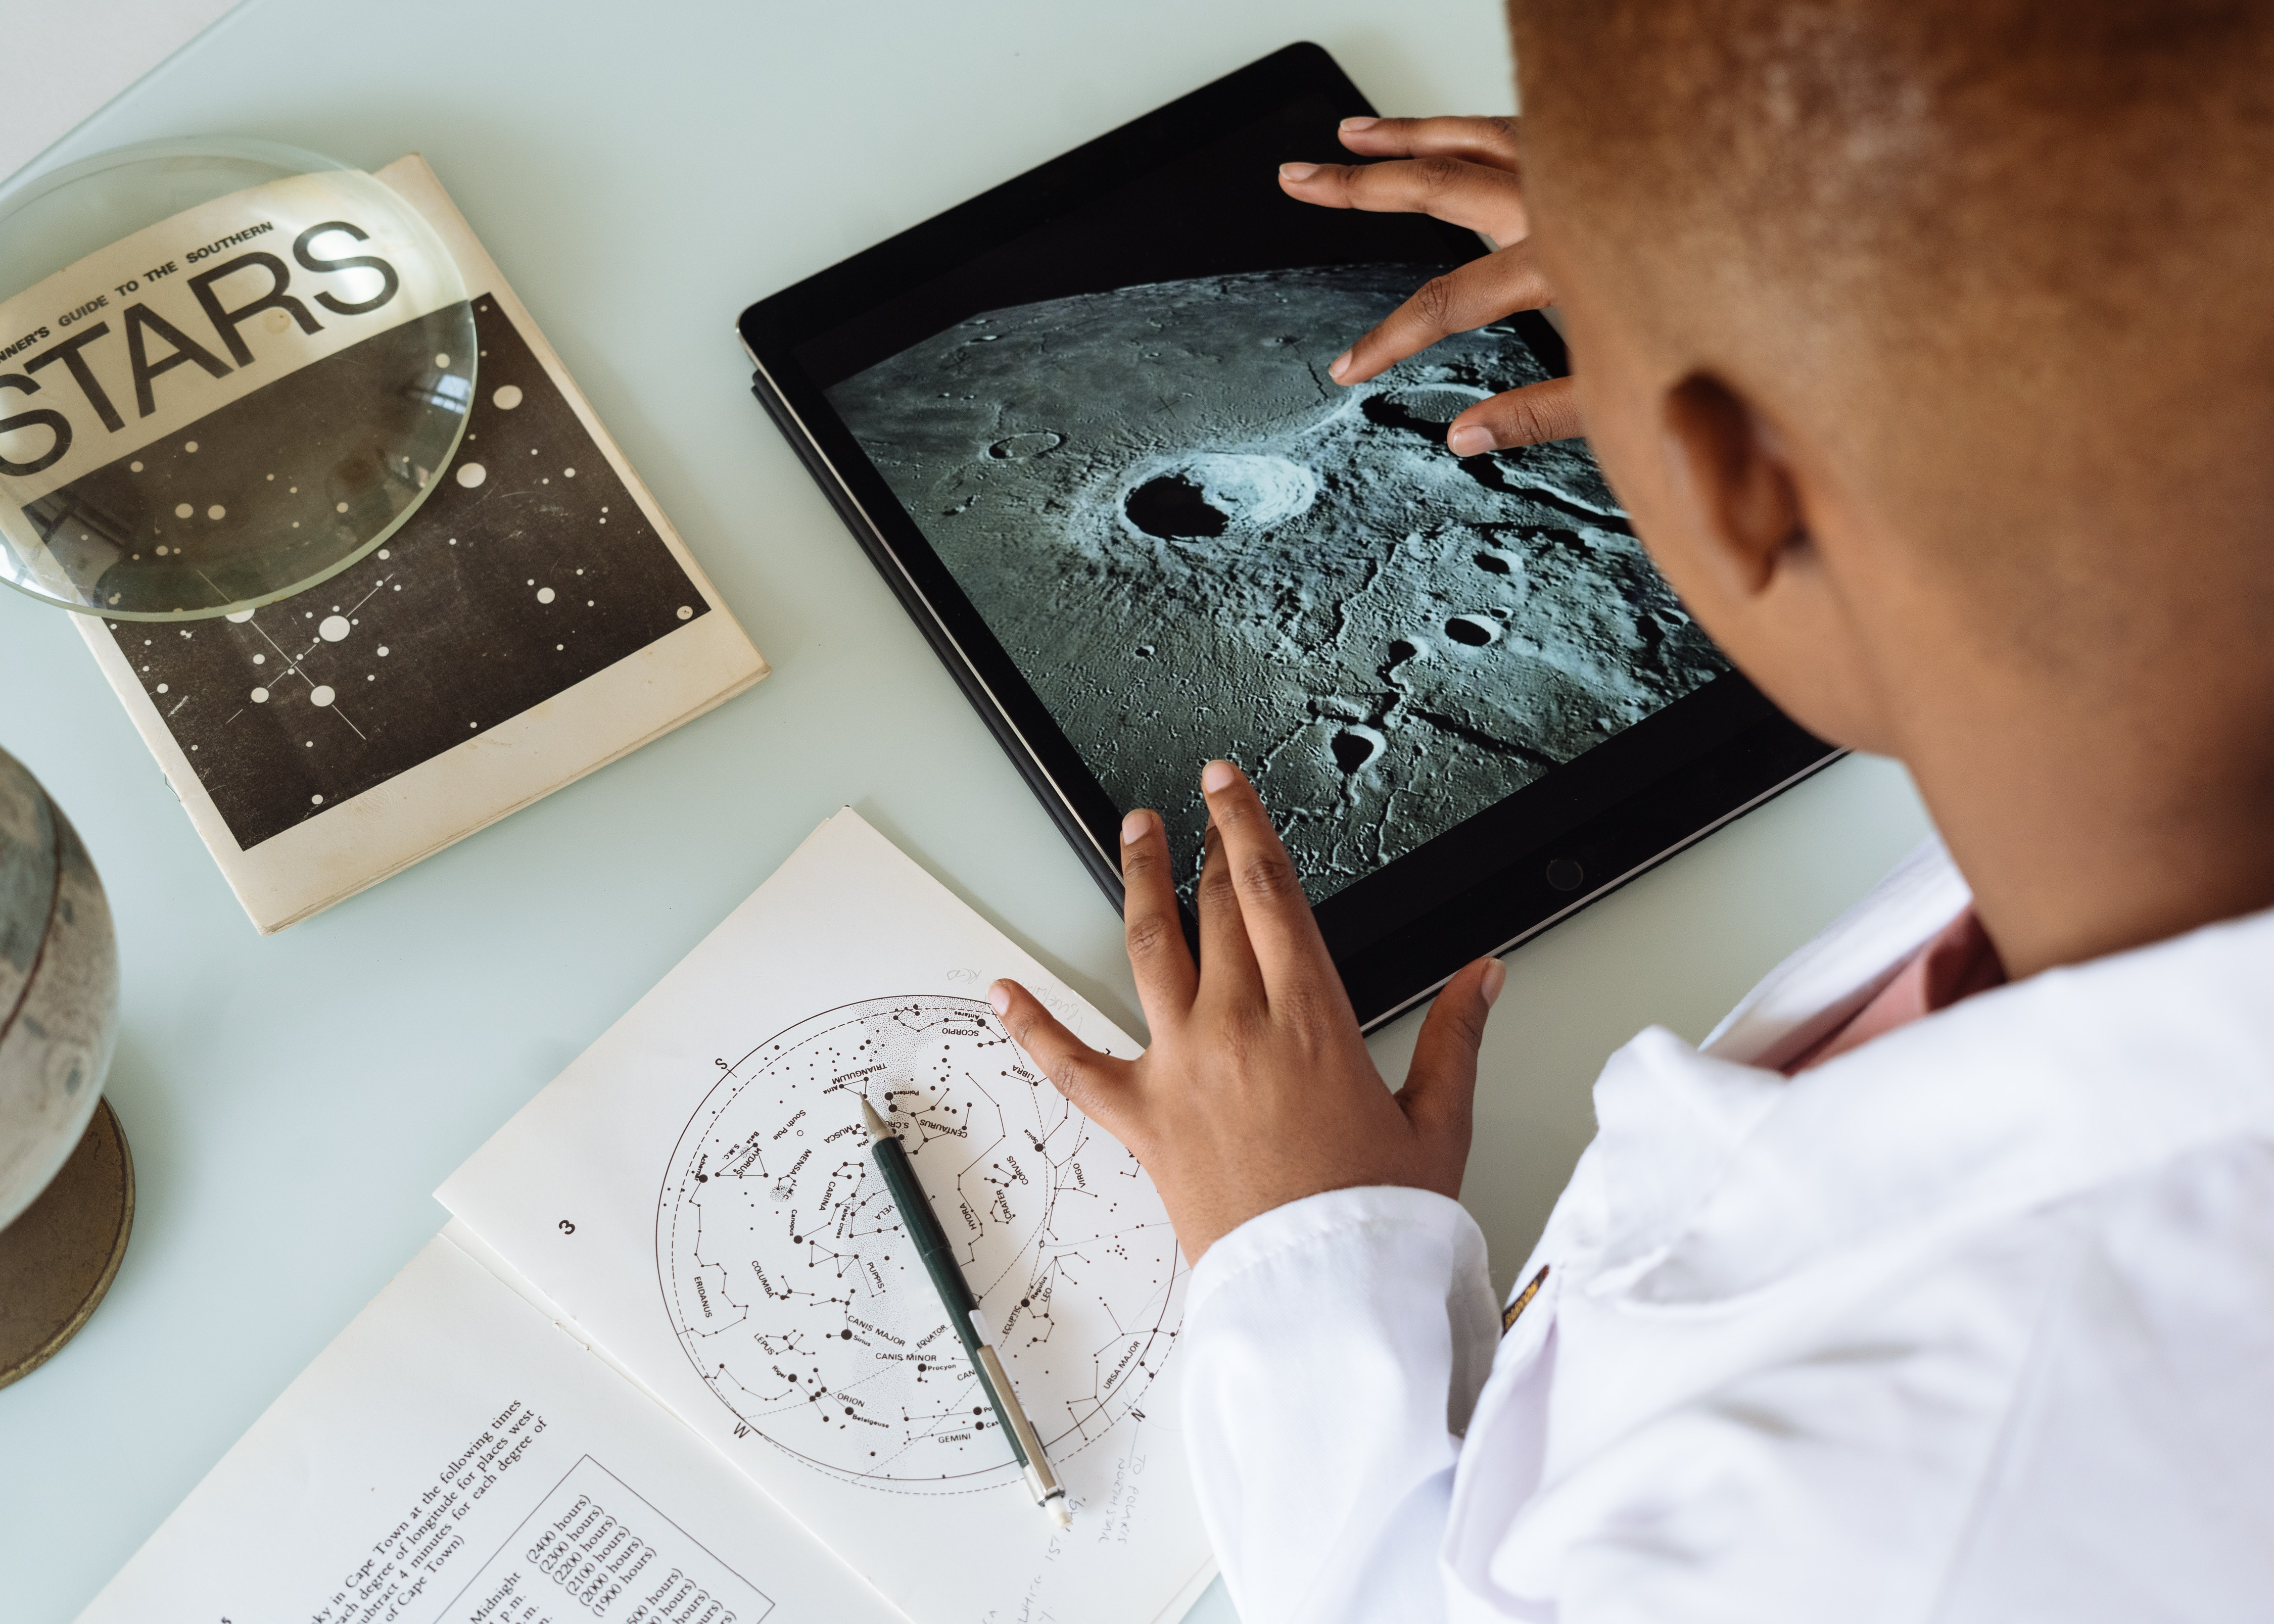 Photo of young man studying images of the moon